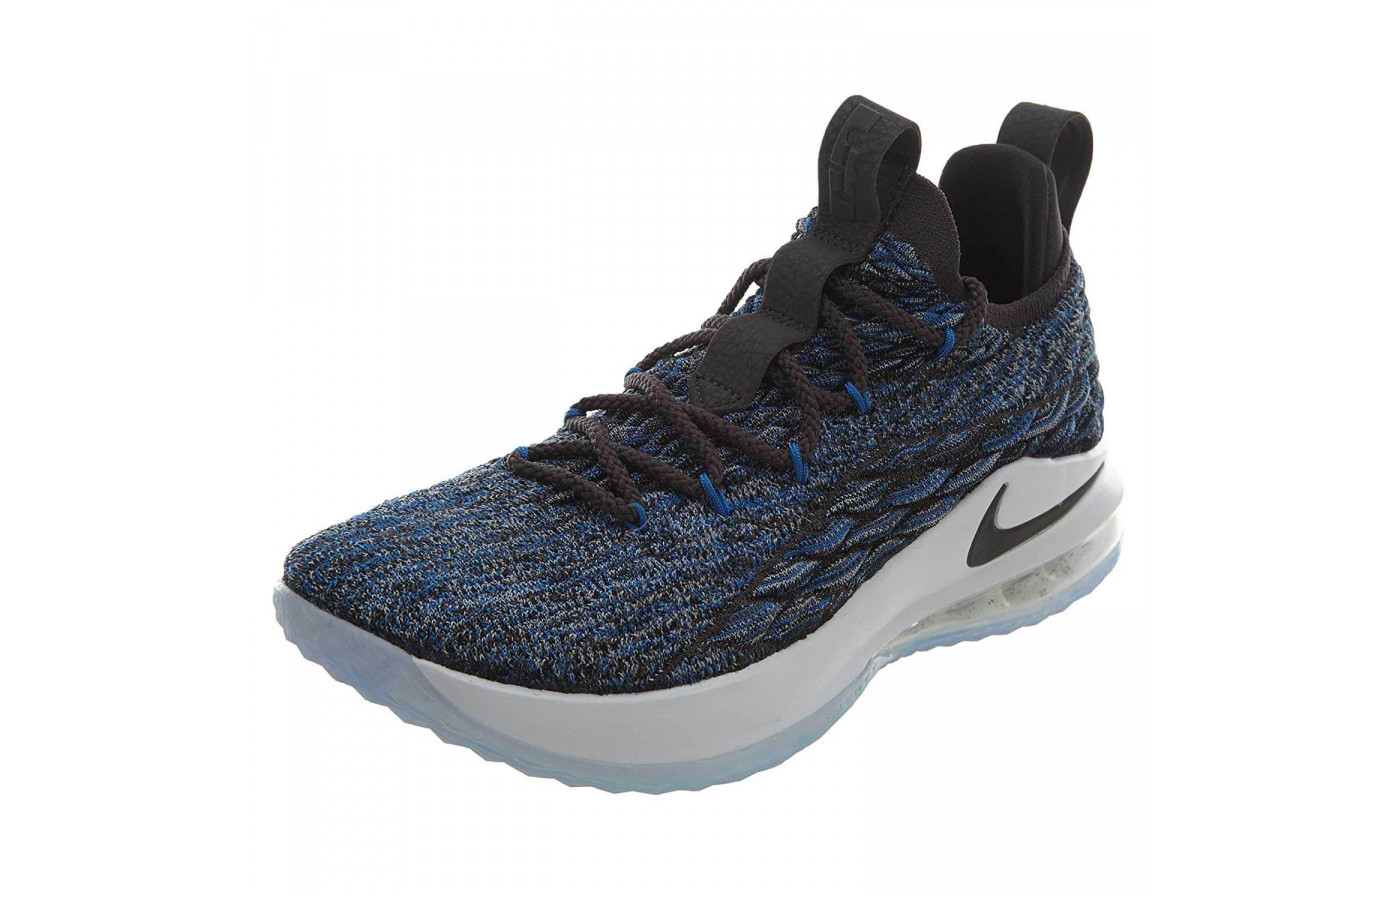 4c35e7a81ec The Lebron 15 Low is constructed with a Battleknit upper material ...